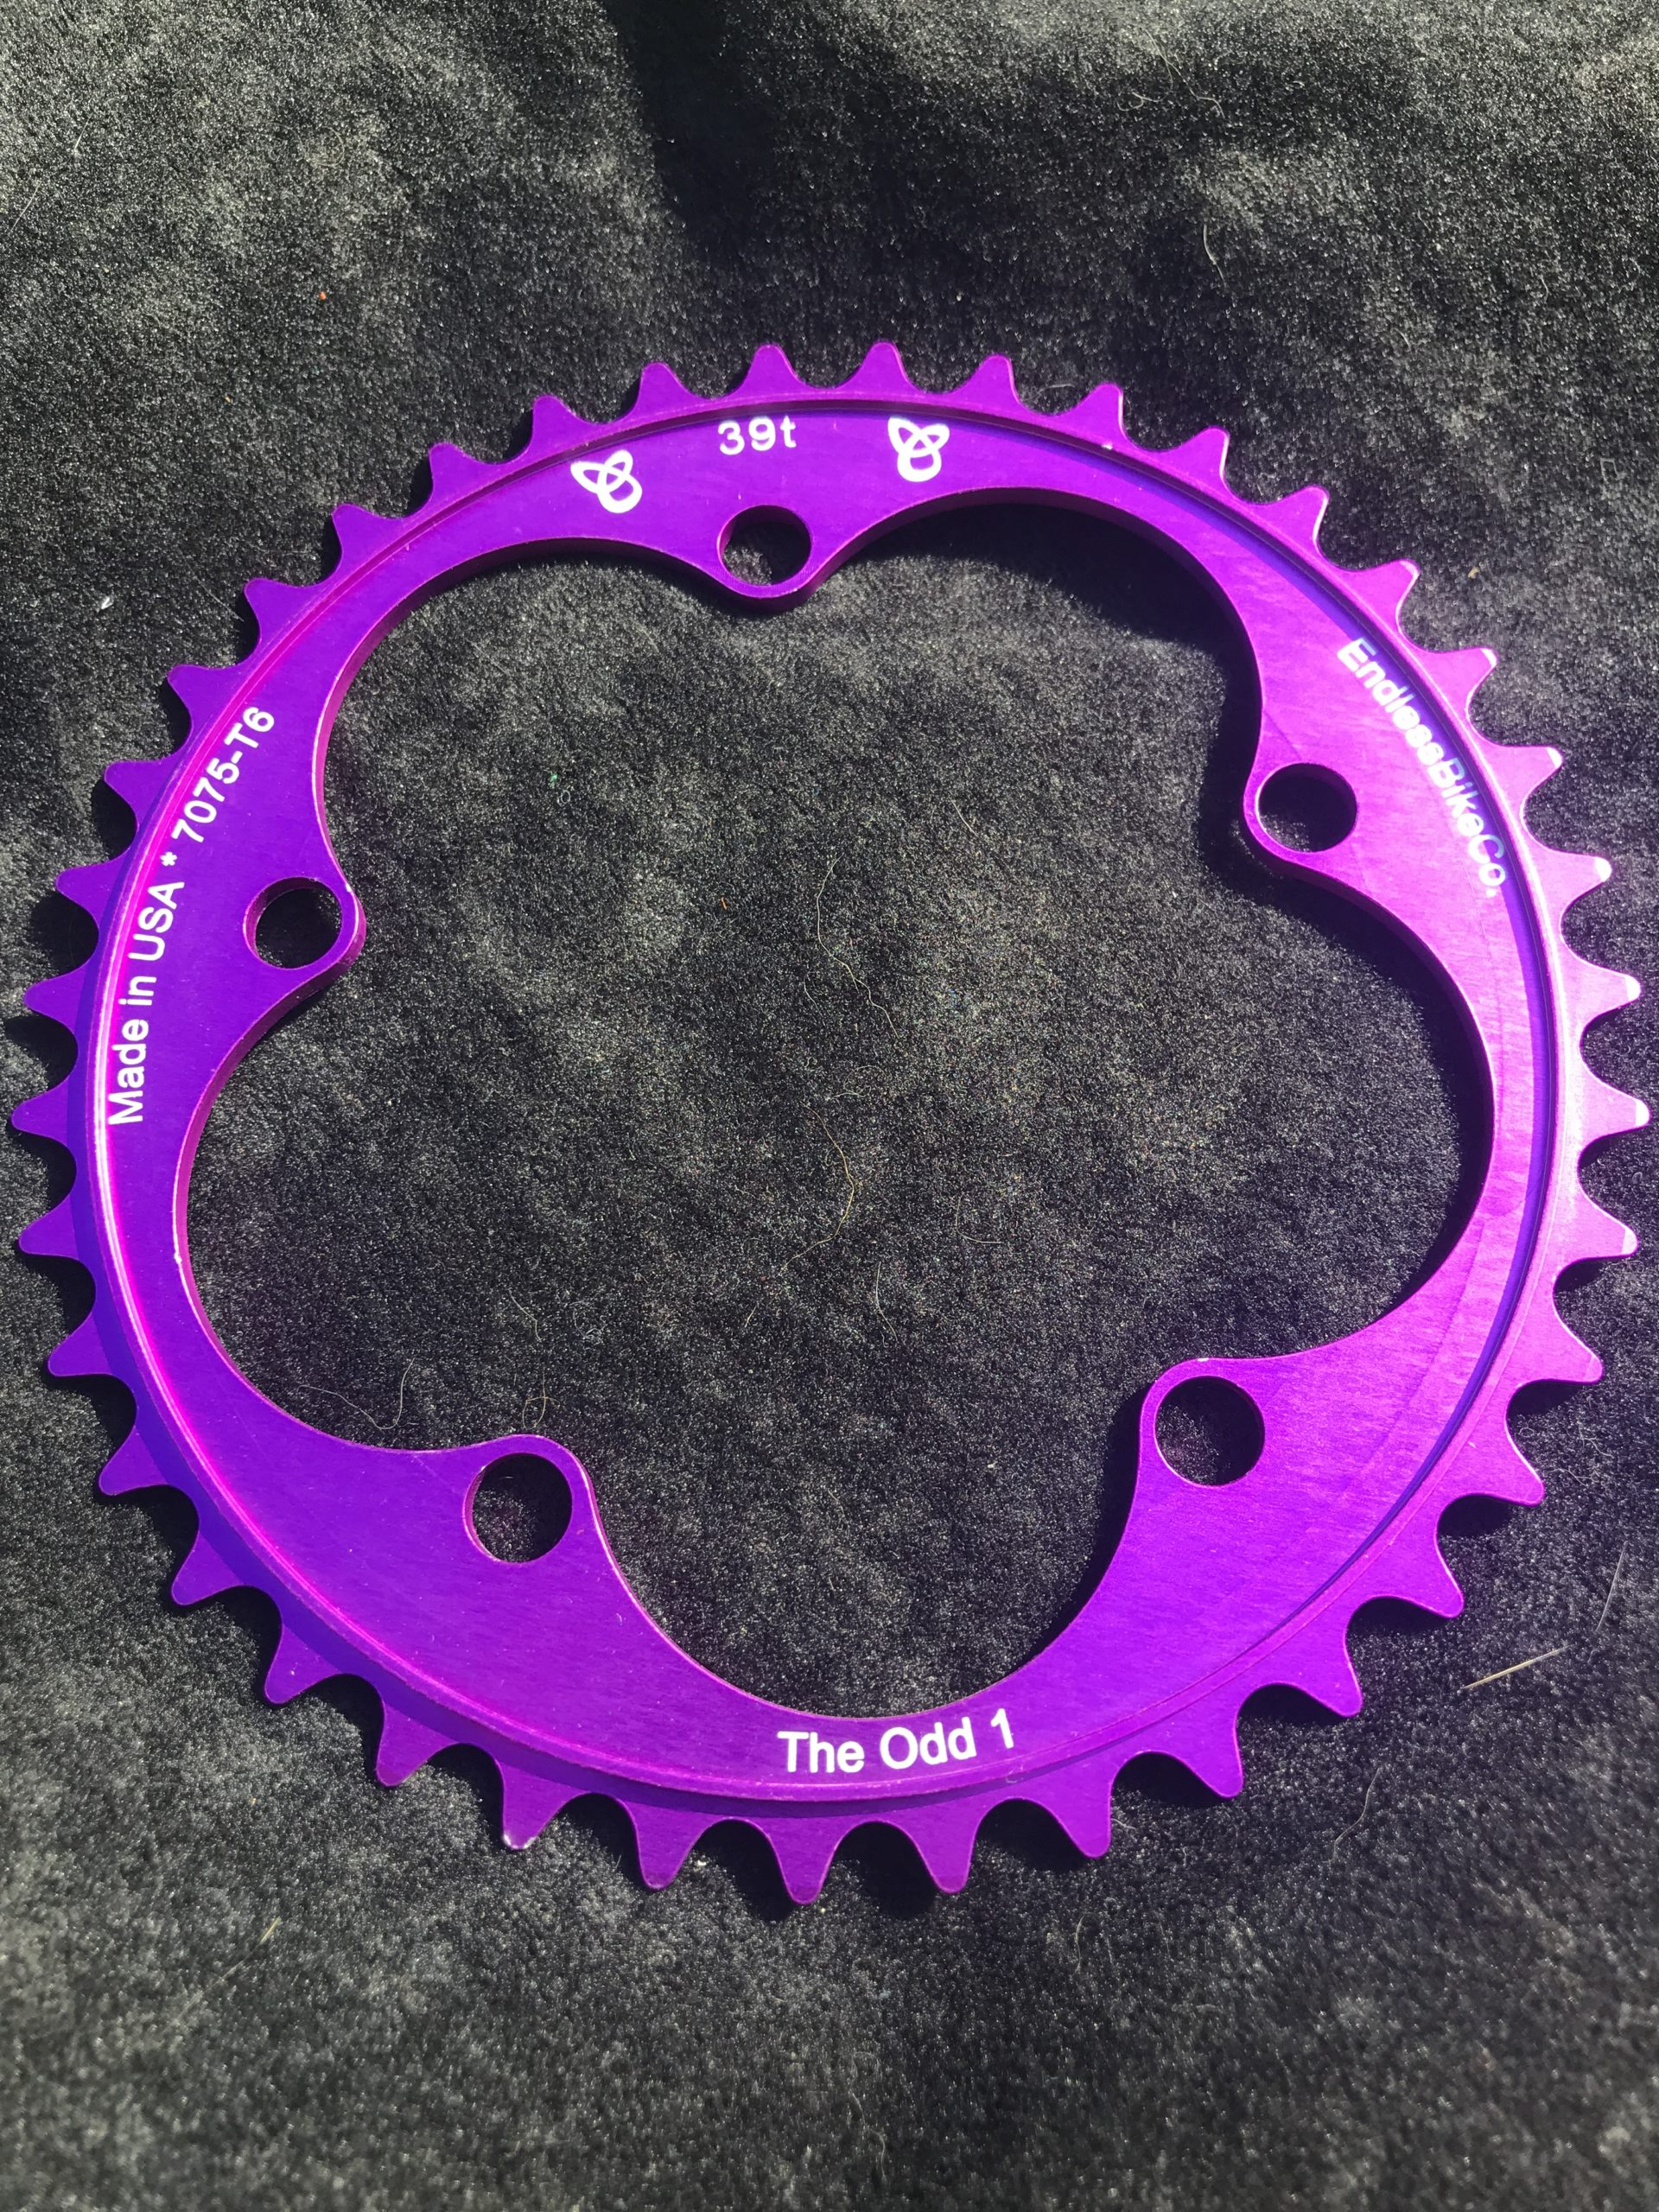 Narrow wide chain ring 39 tooth purple